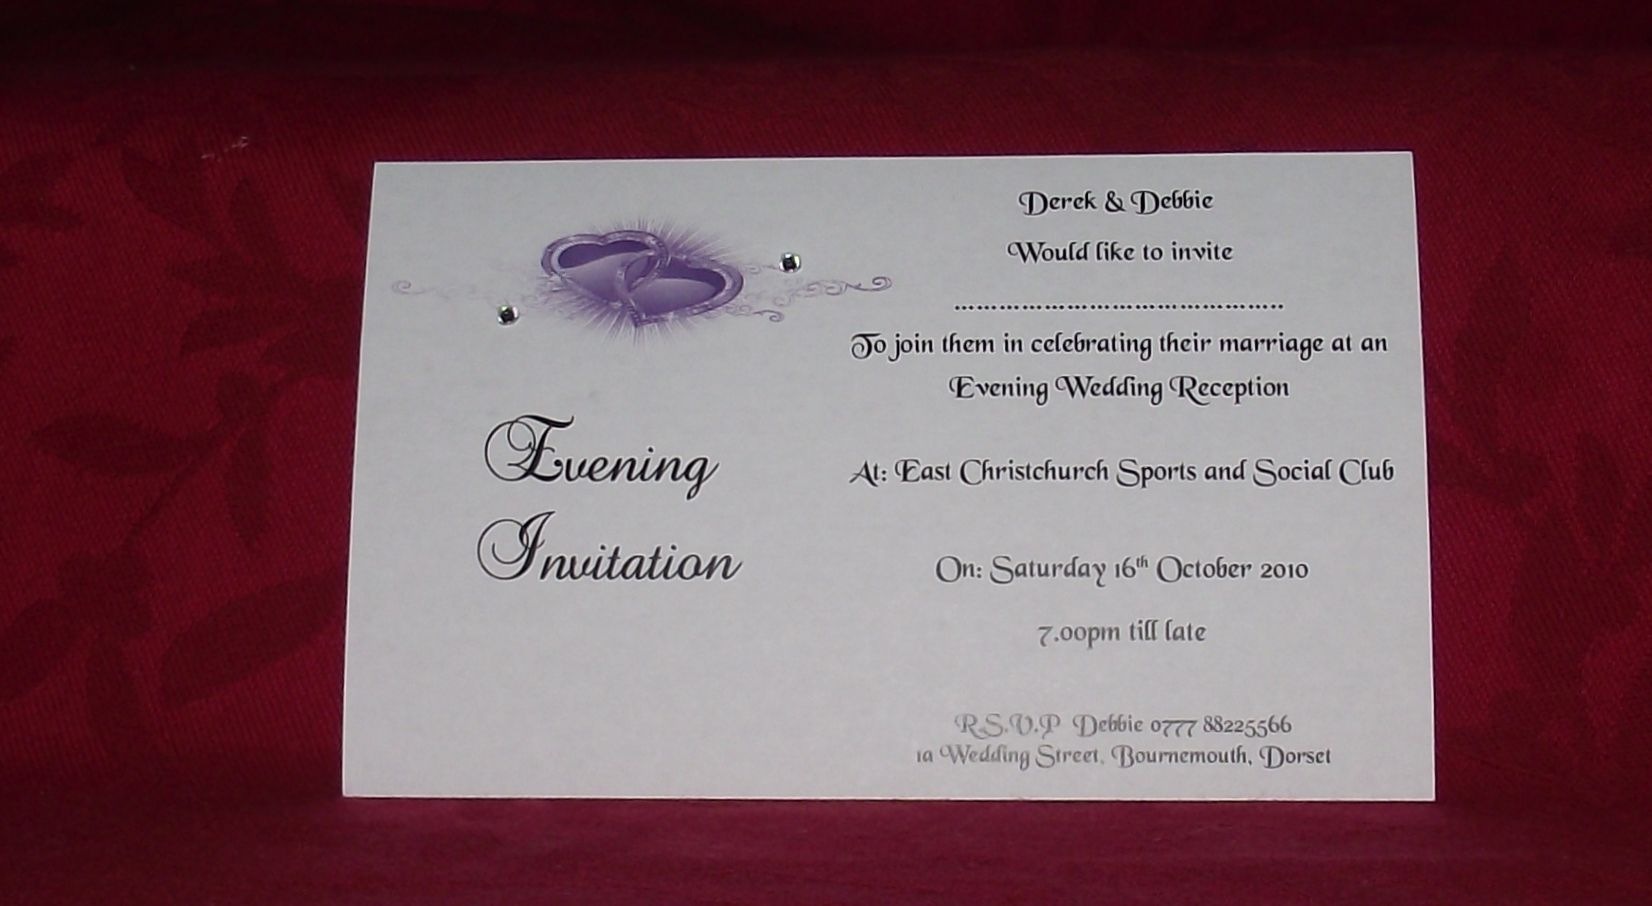 Evening Wedding Reception Invitations: Wedding Invitations Day Or Evening Personalised Printed